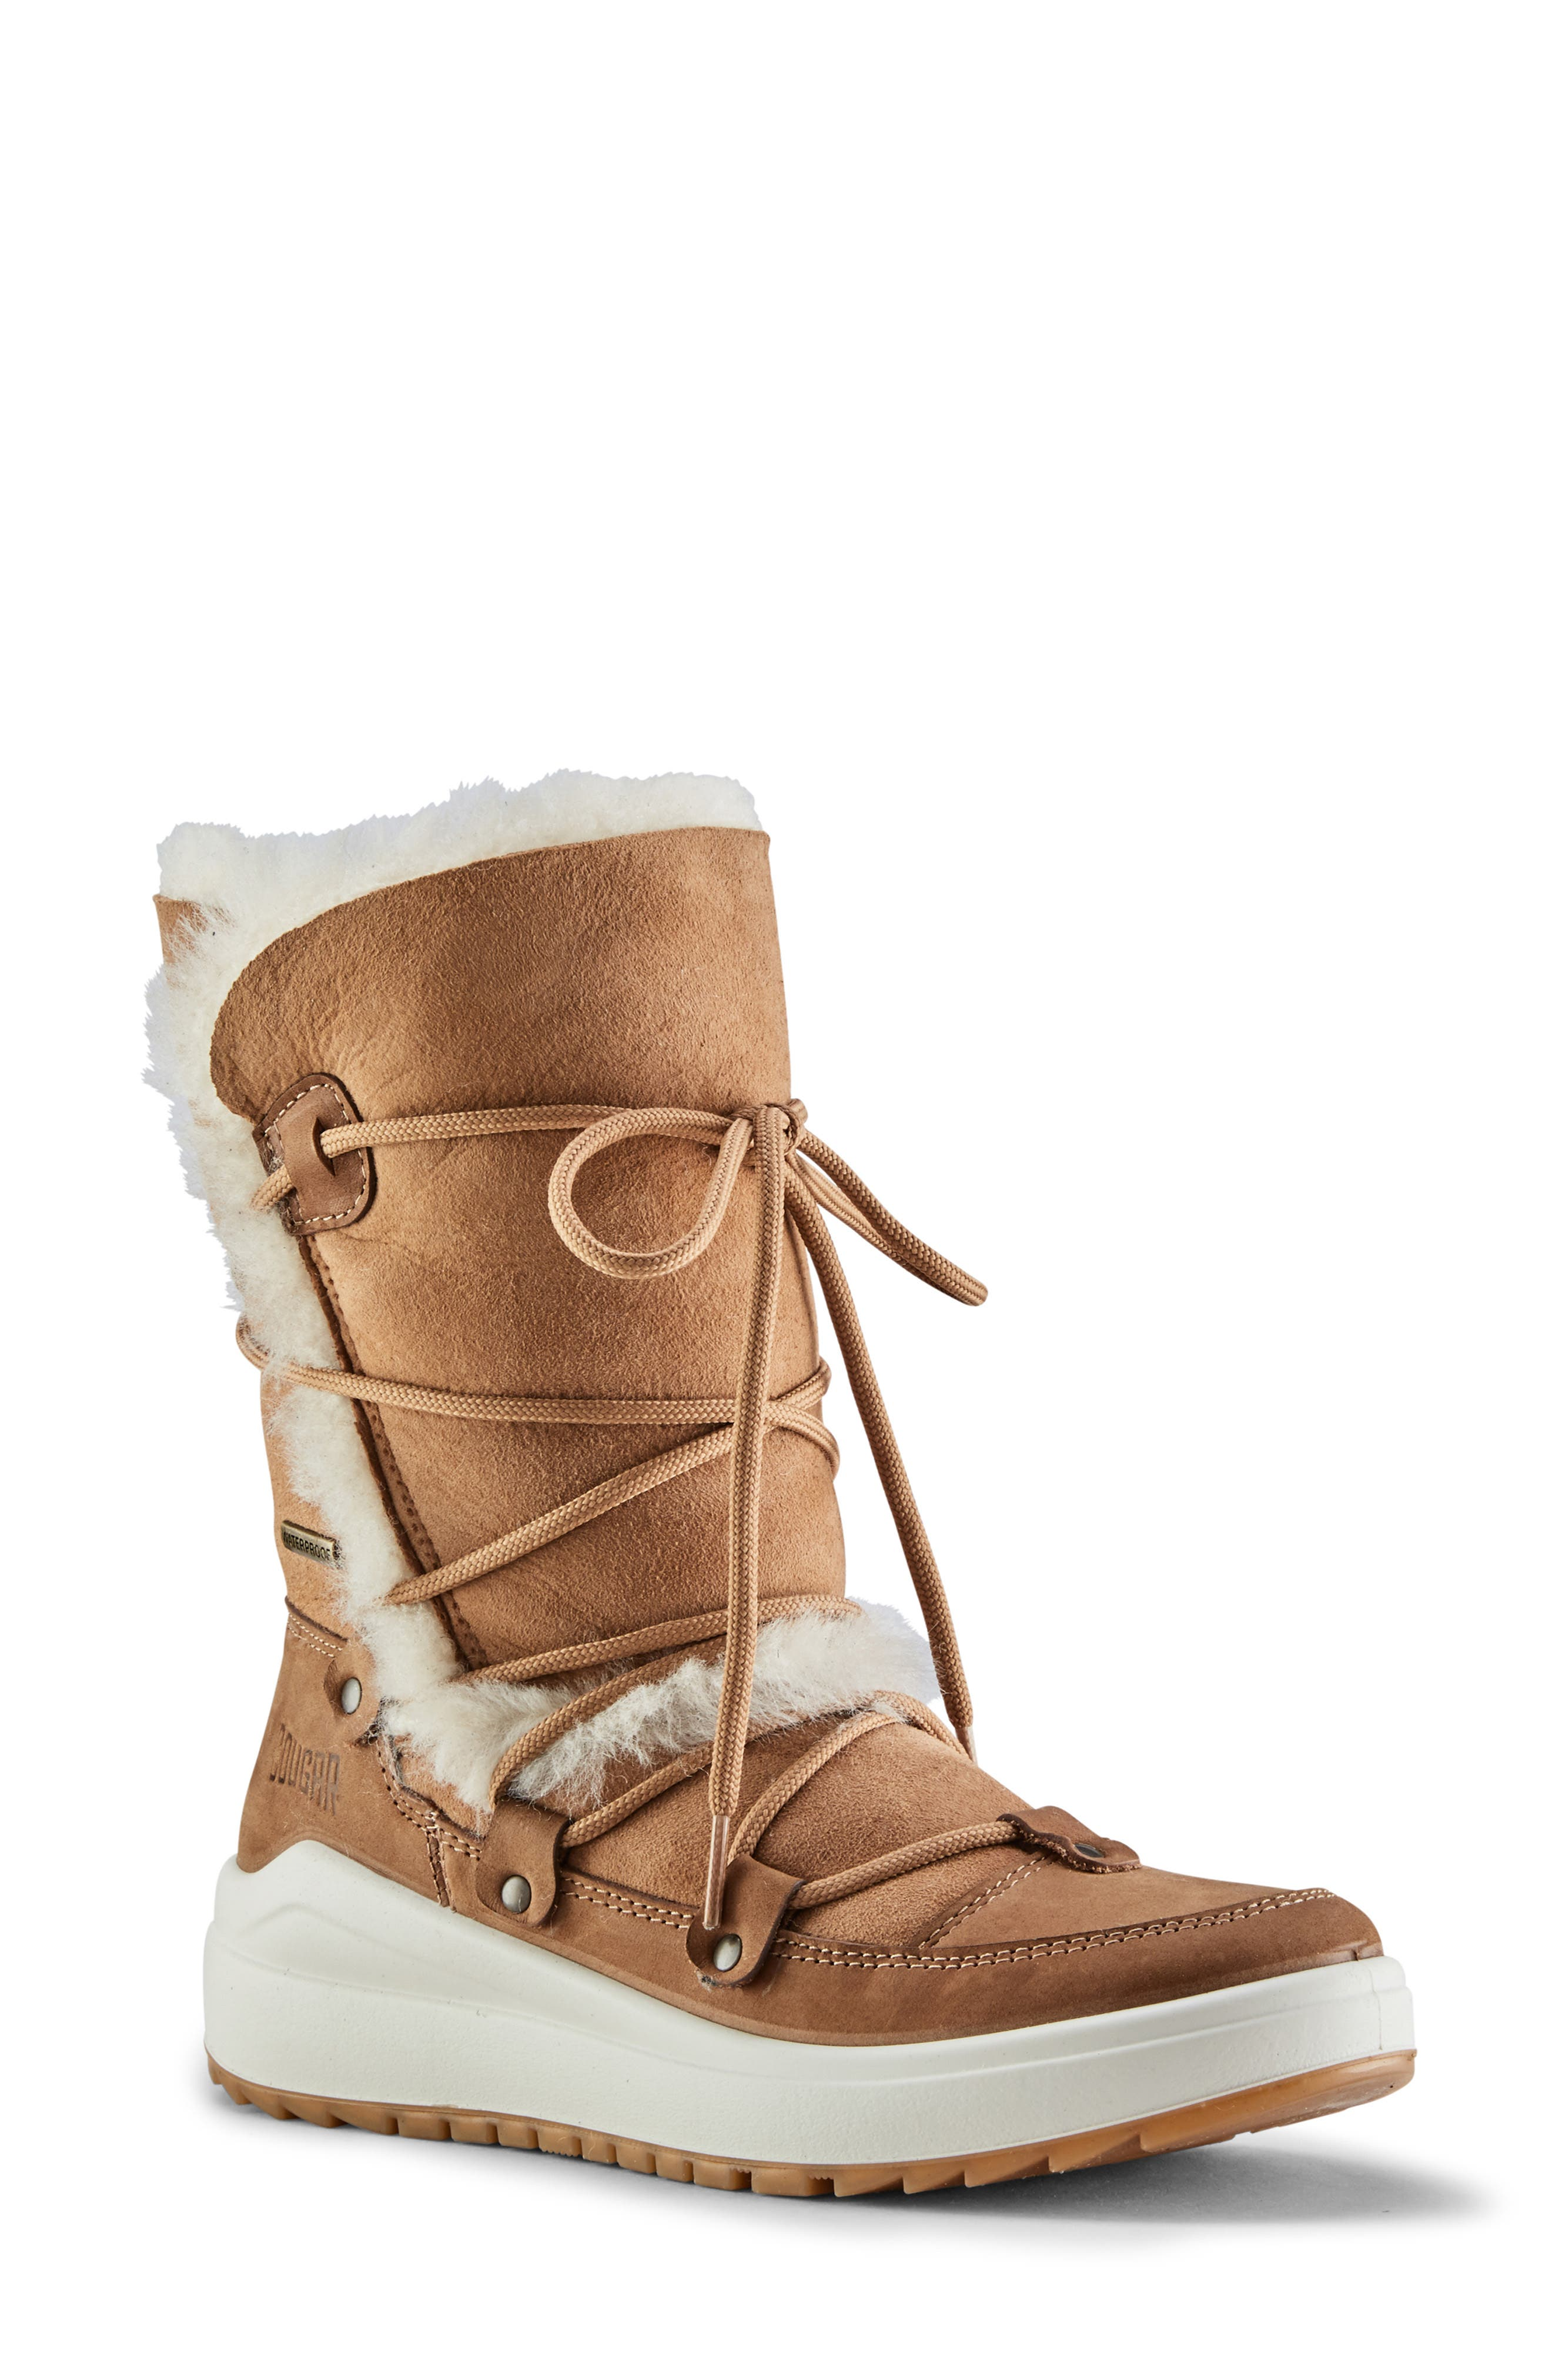 cougar boots on sale